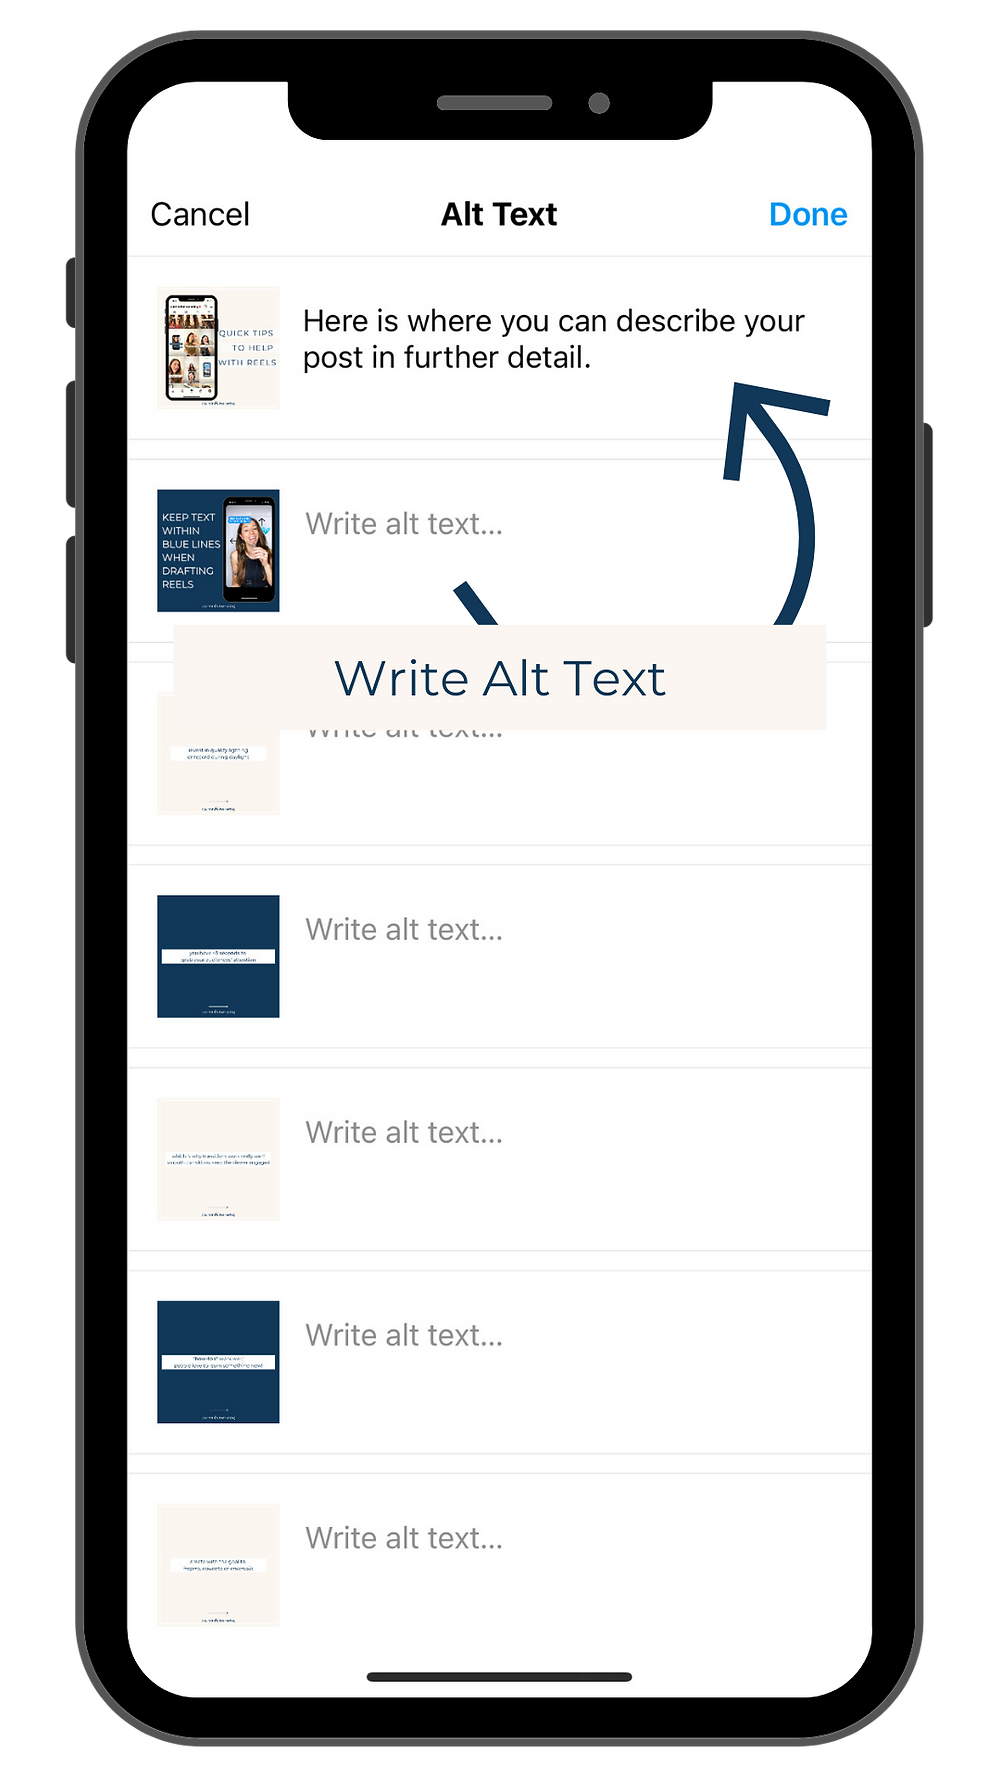 Image of a screenshot of the 'Write Alt Text' feature or also known as technology applications in the Instagram settings when drafting a new post. Displayed from the profile of @ourmindfulmarketing